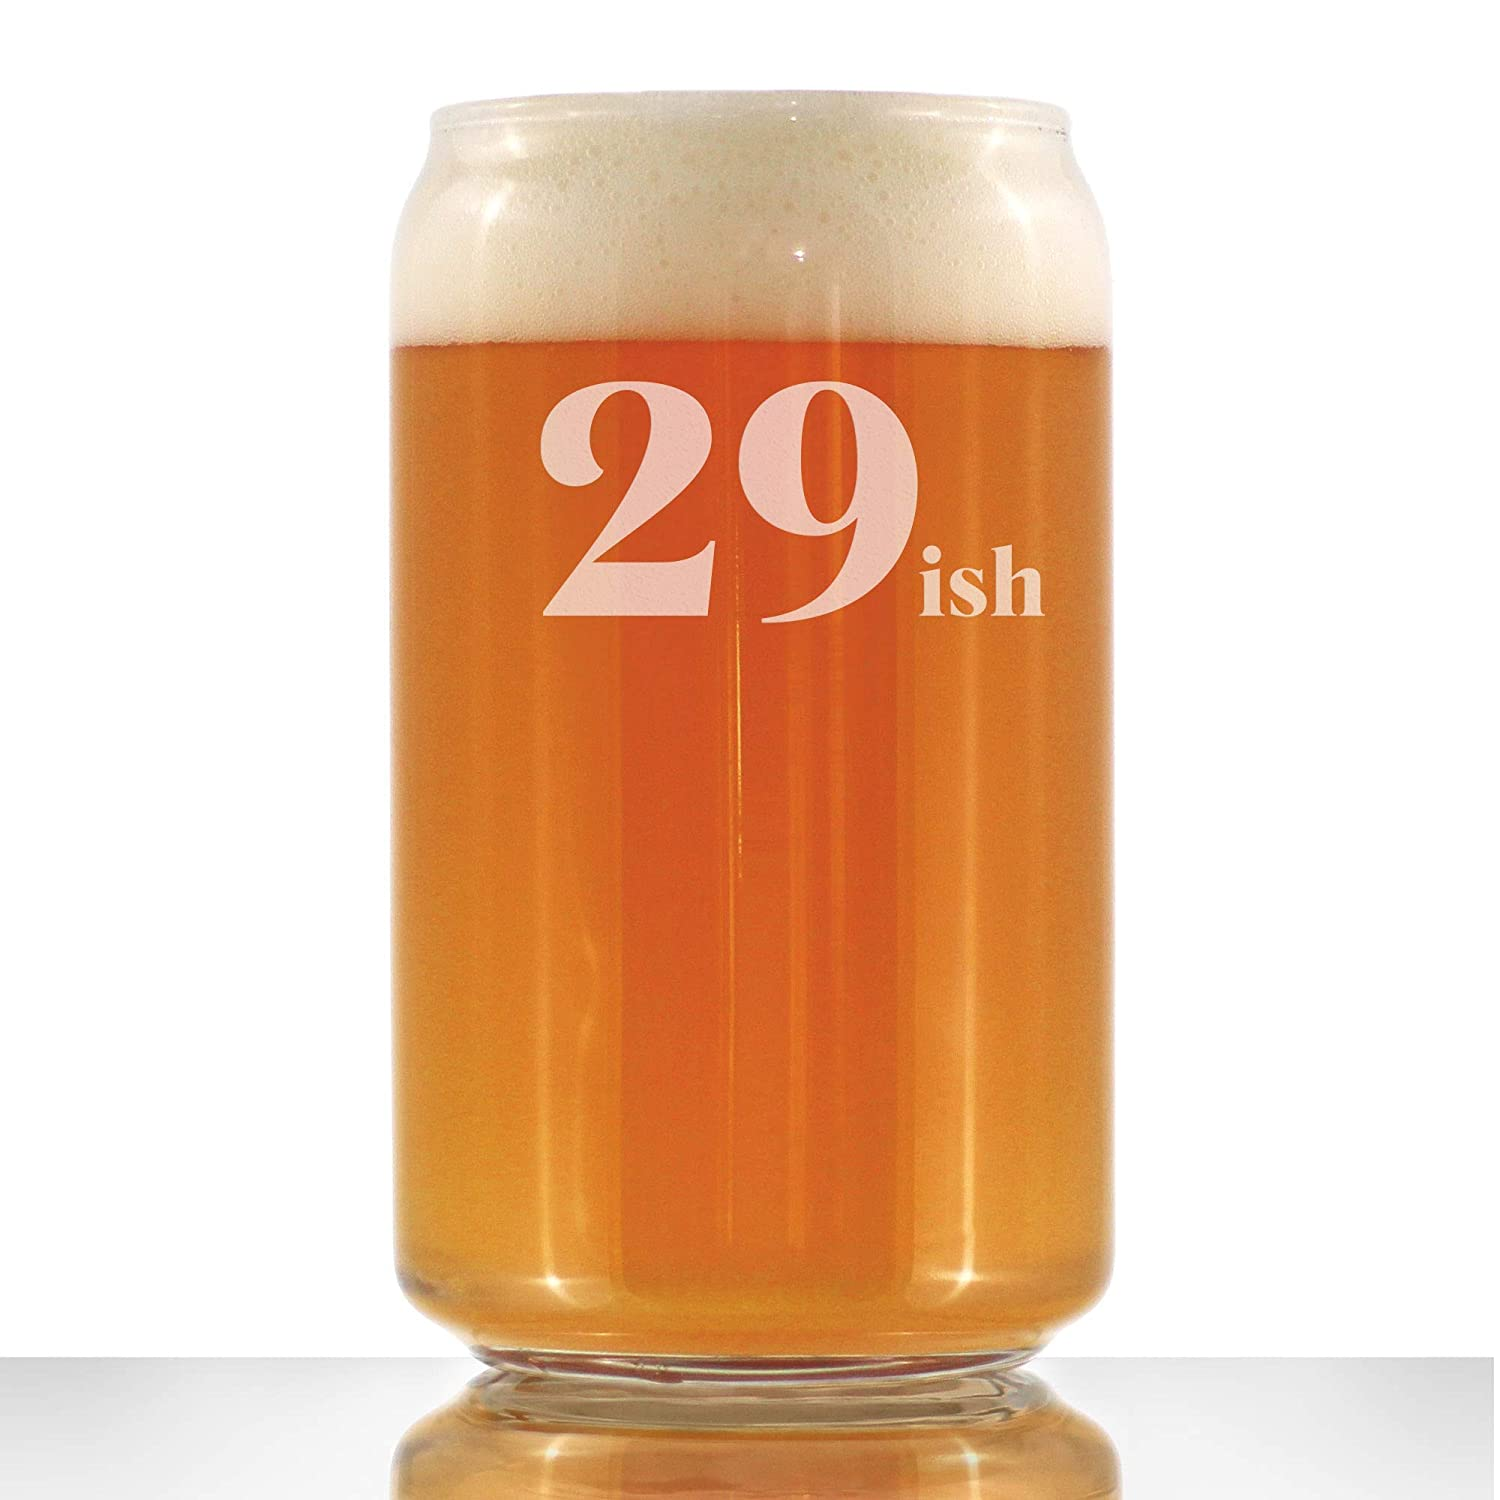 Amazon Com 29ish Funny 16 Oz Beer Can Pint Glass 30th Birthday Gifts For Men Or Women Turning 30 Fun Bday Decor Handmade